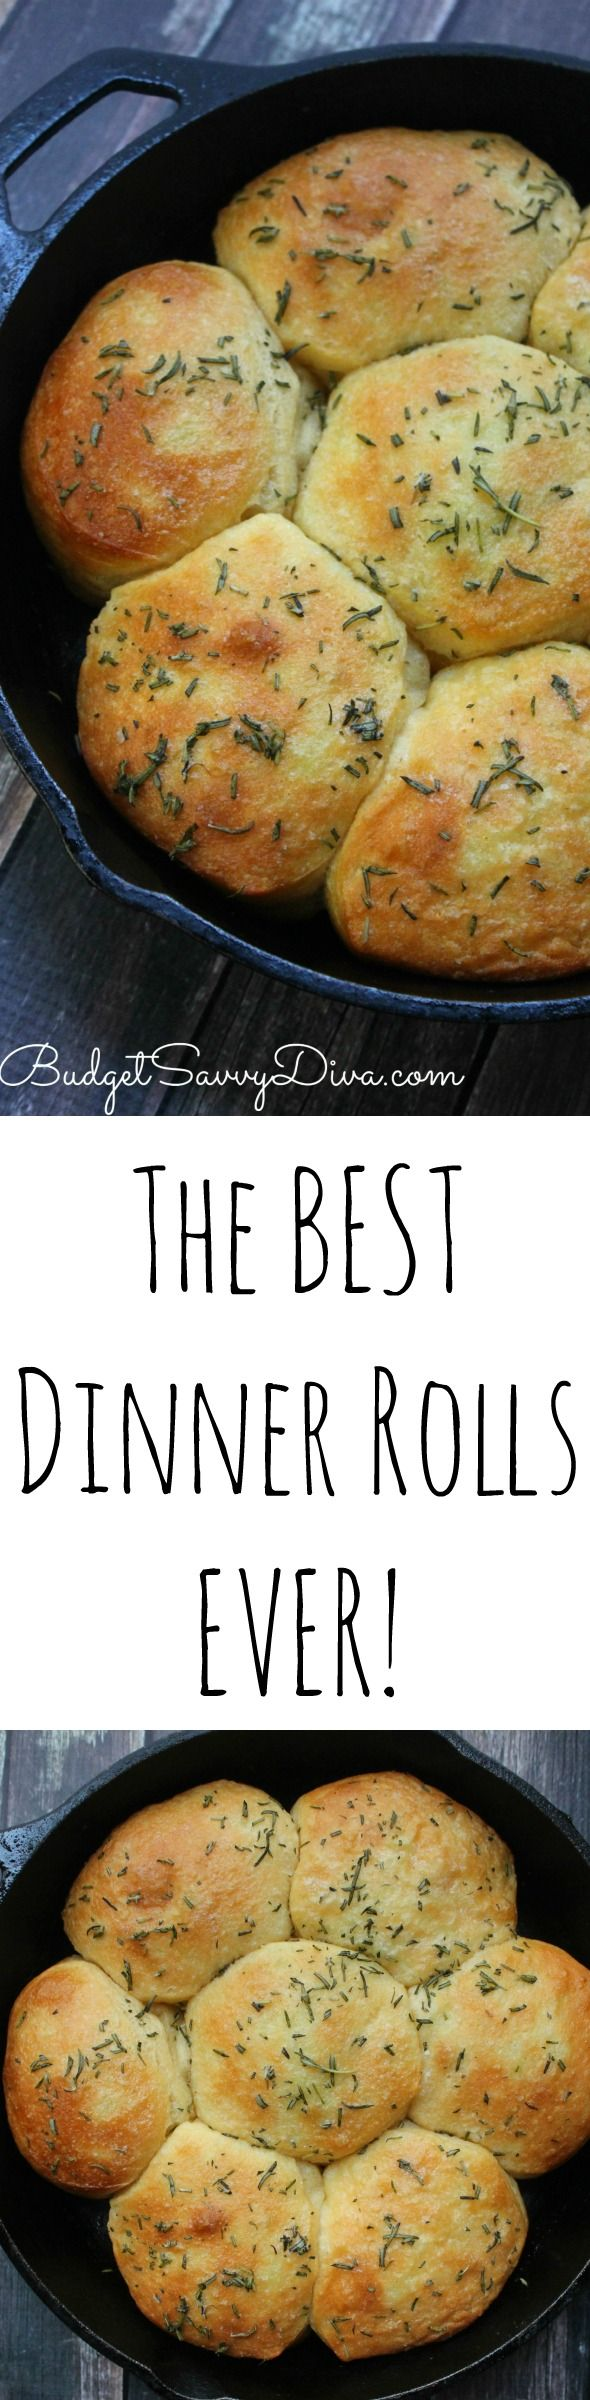 The BEST Dinner Rolls Ever Recipe - I will be making these rolls for Thanksgiving. Perfect Roll Recipe for The Holidays